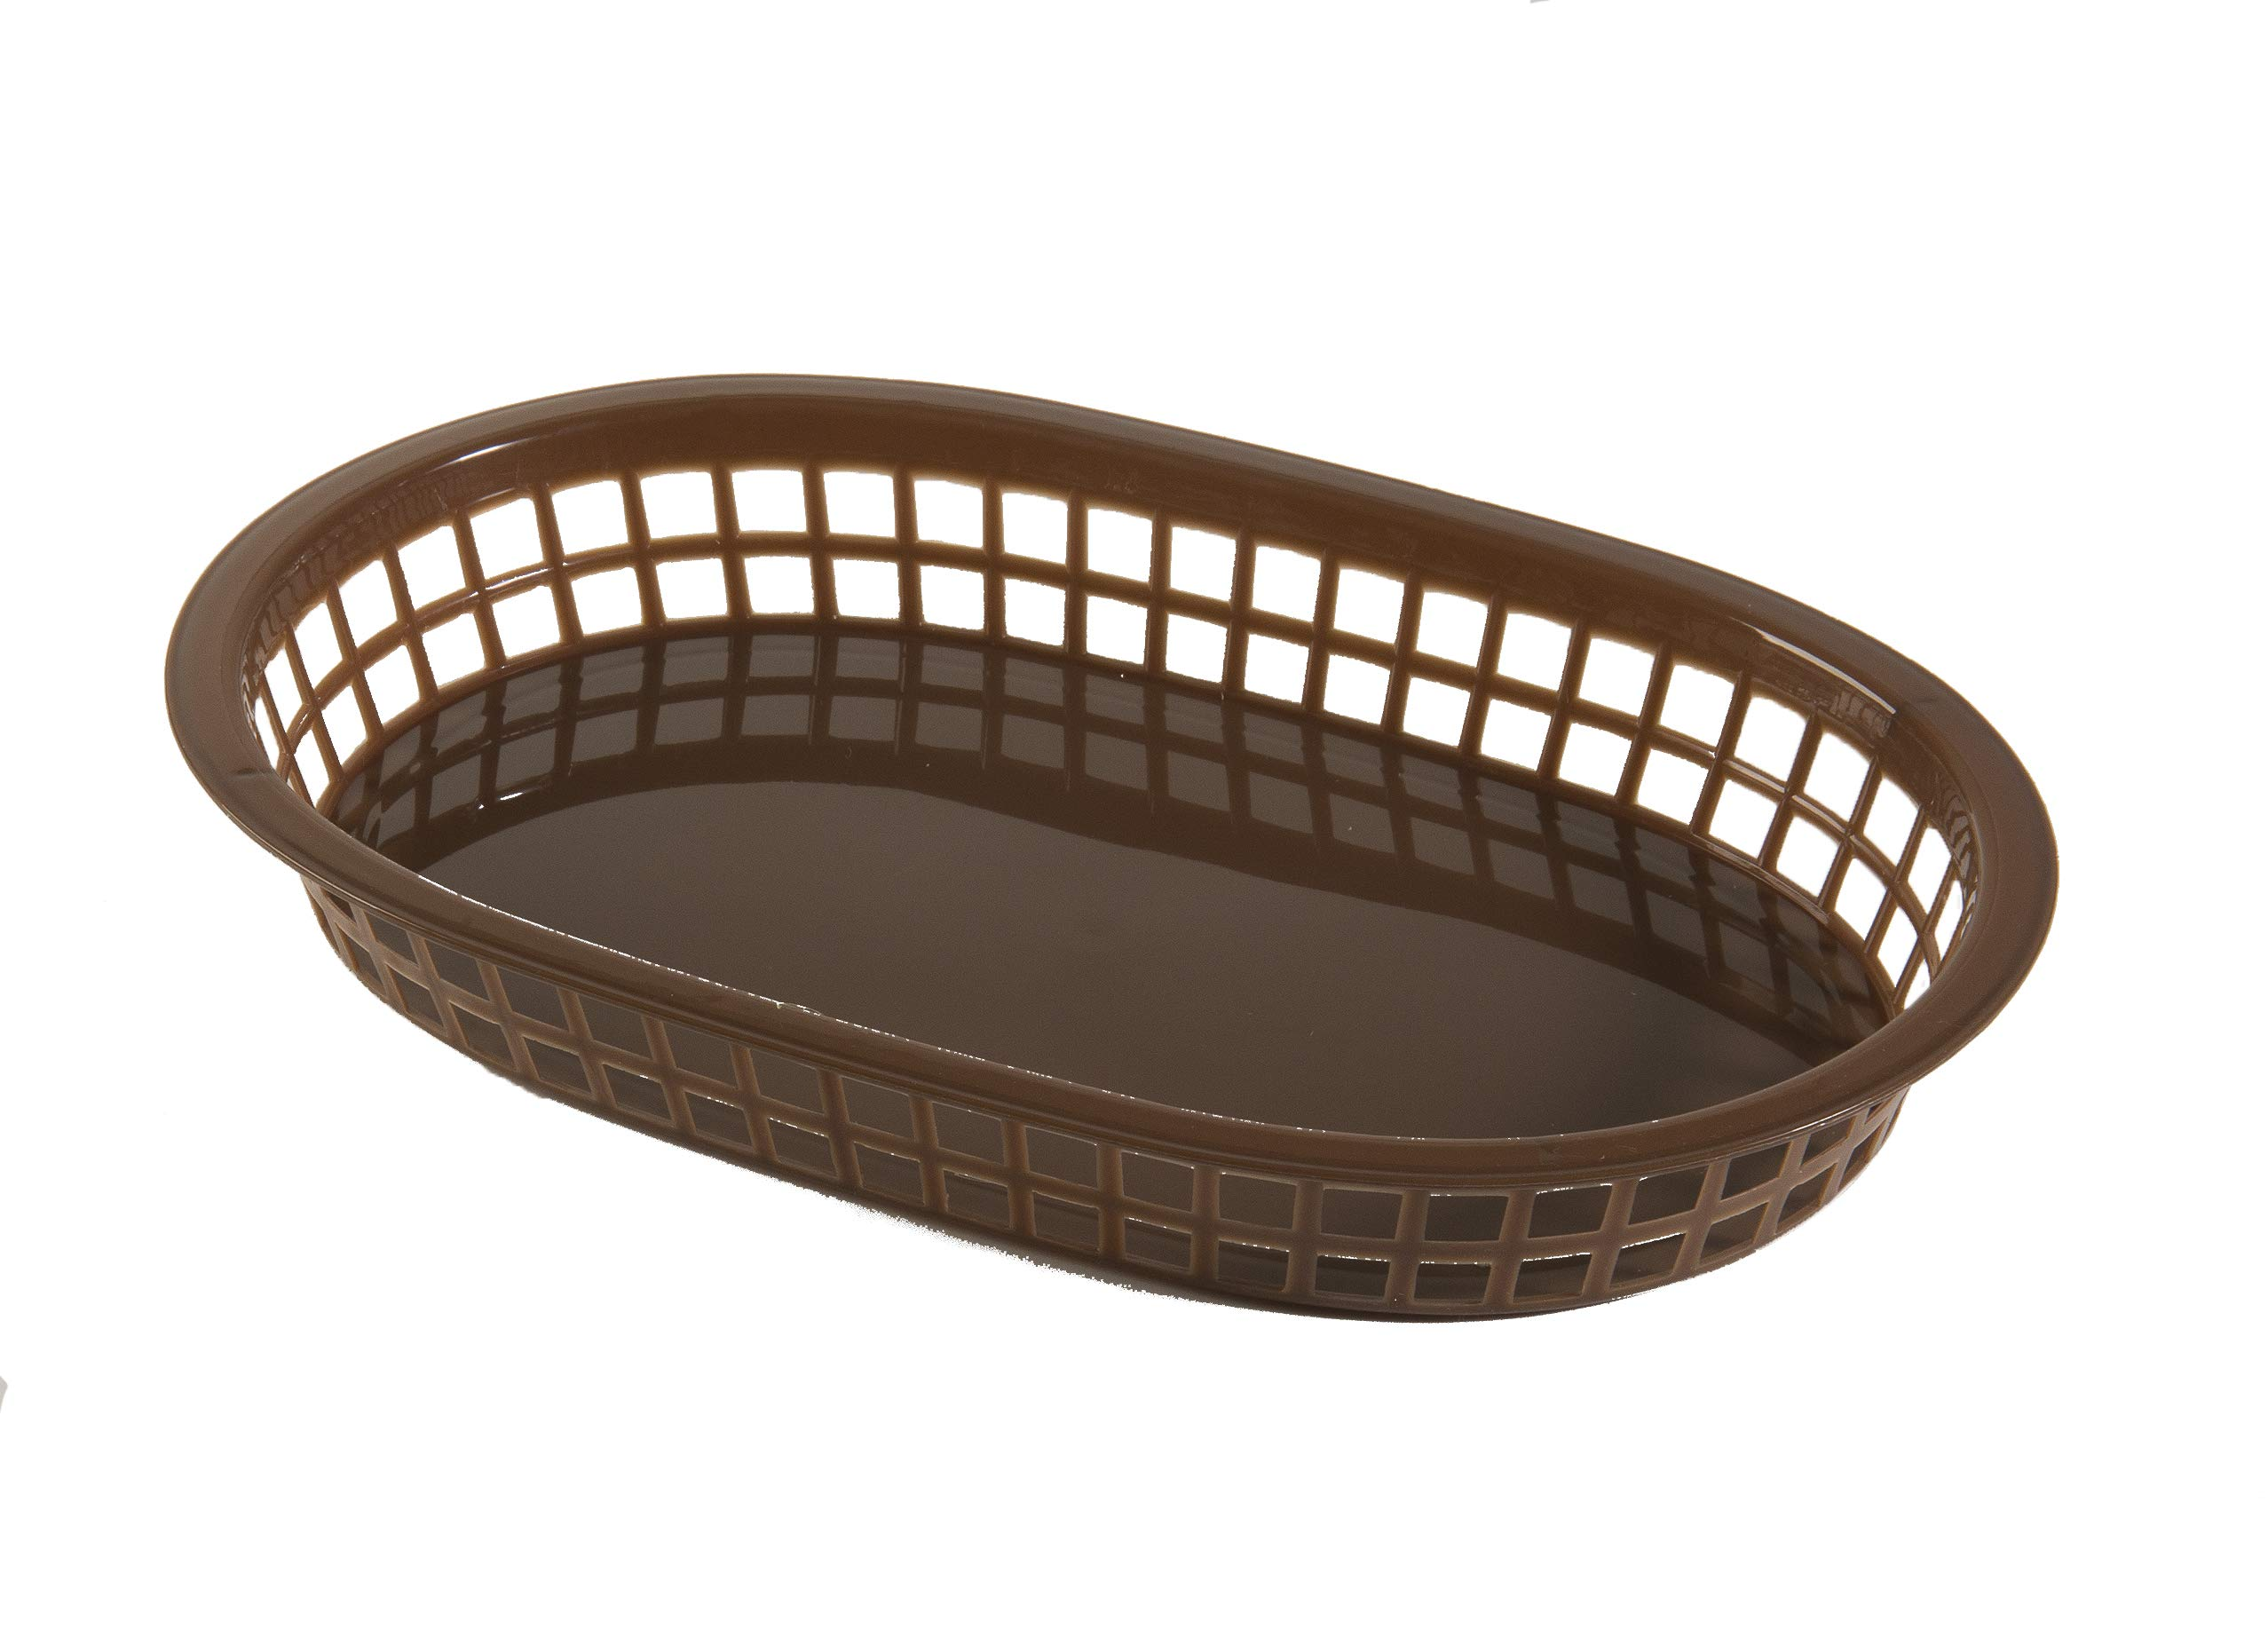 Update International (BB107B) Oval Fast Food Baskets [Set of 12]